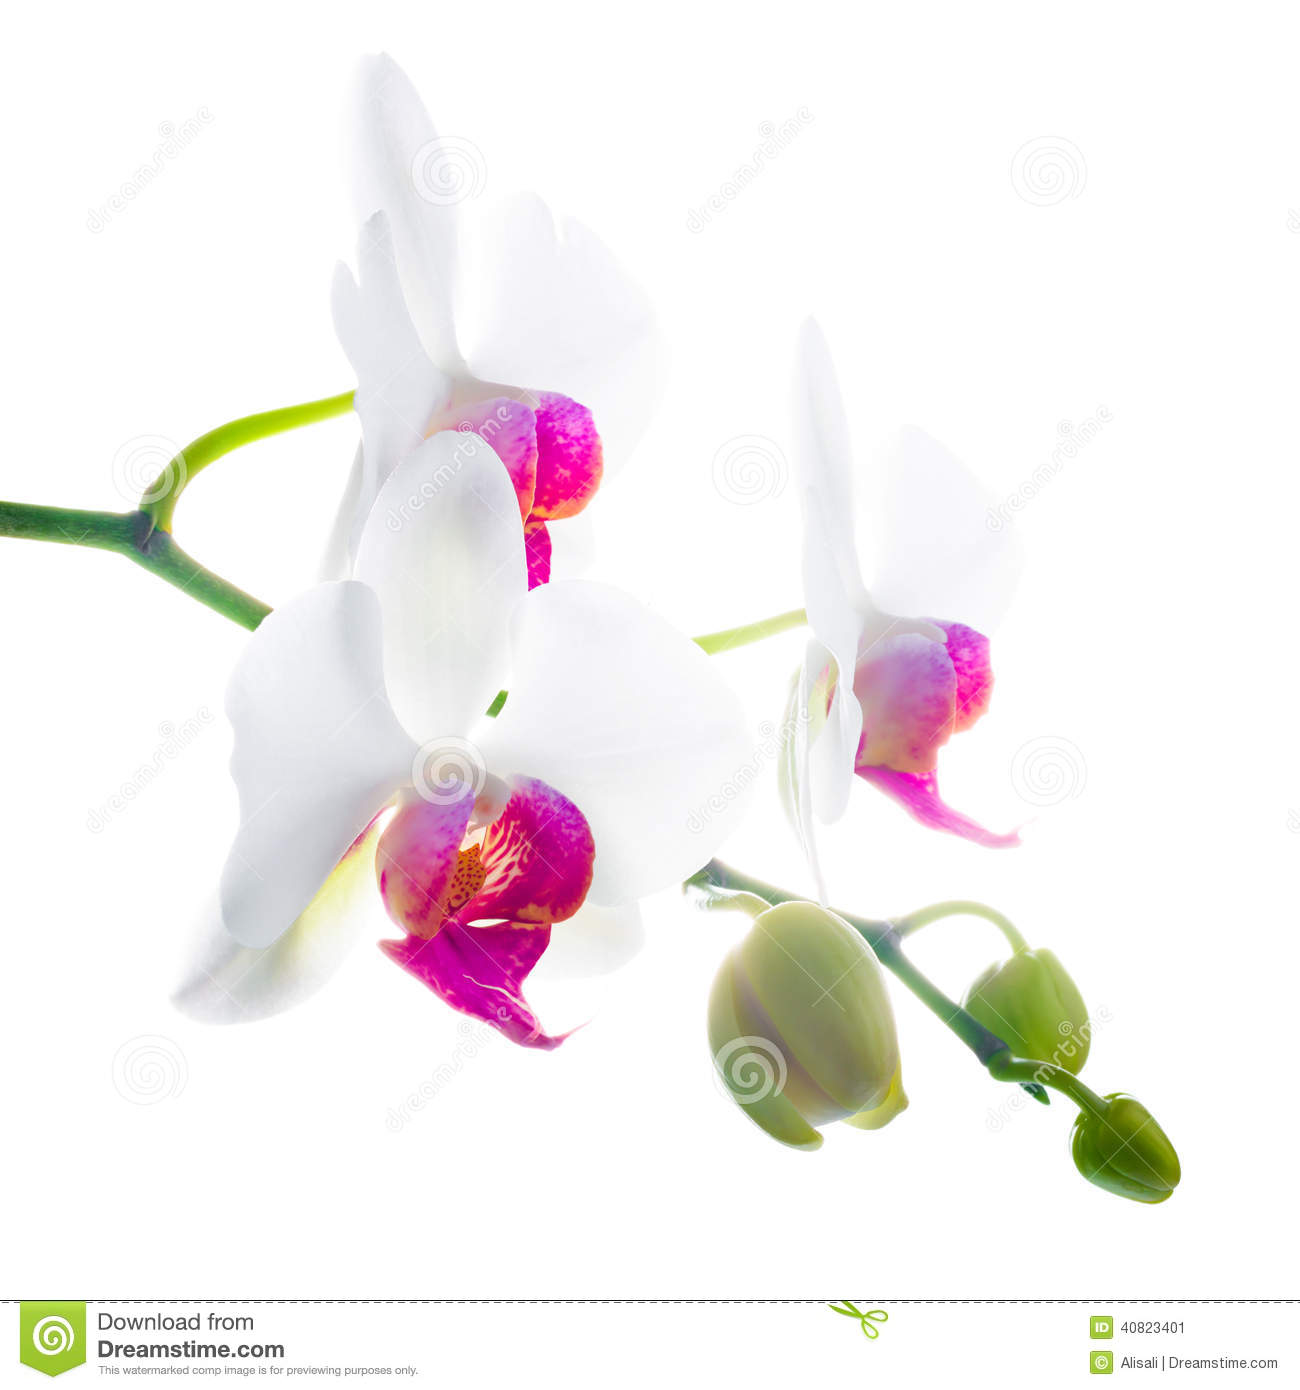 Purple and white flower orchid, phalaenosis isolated on white